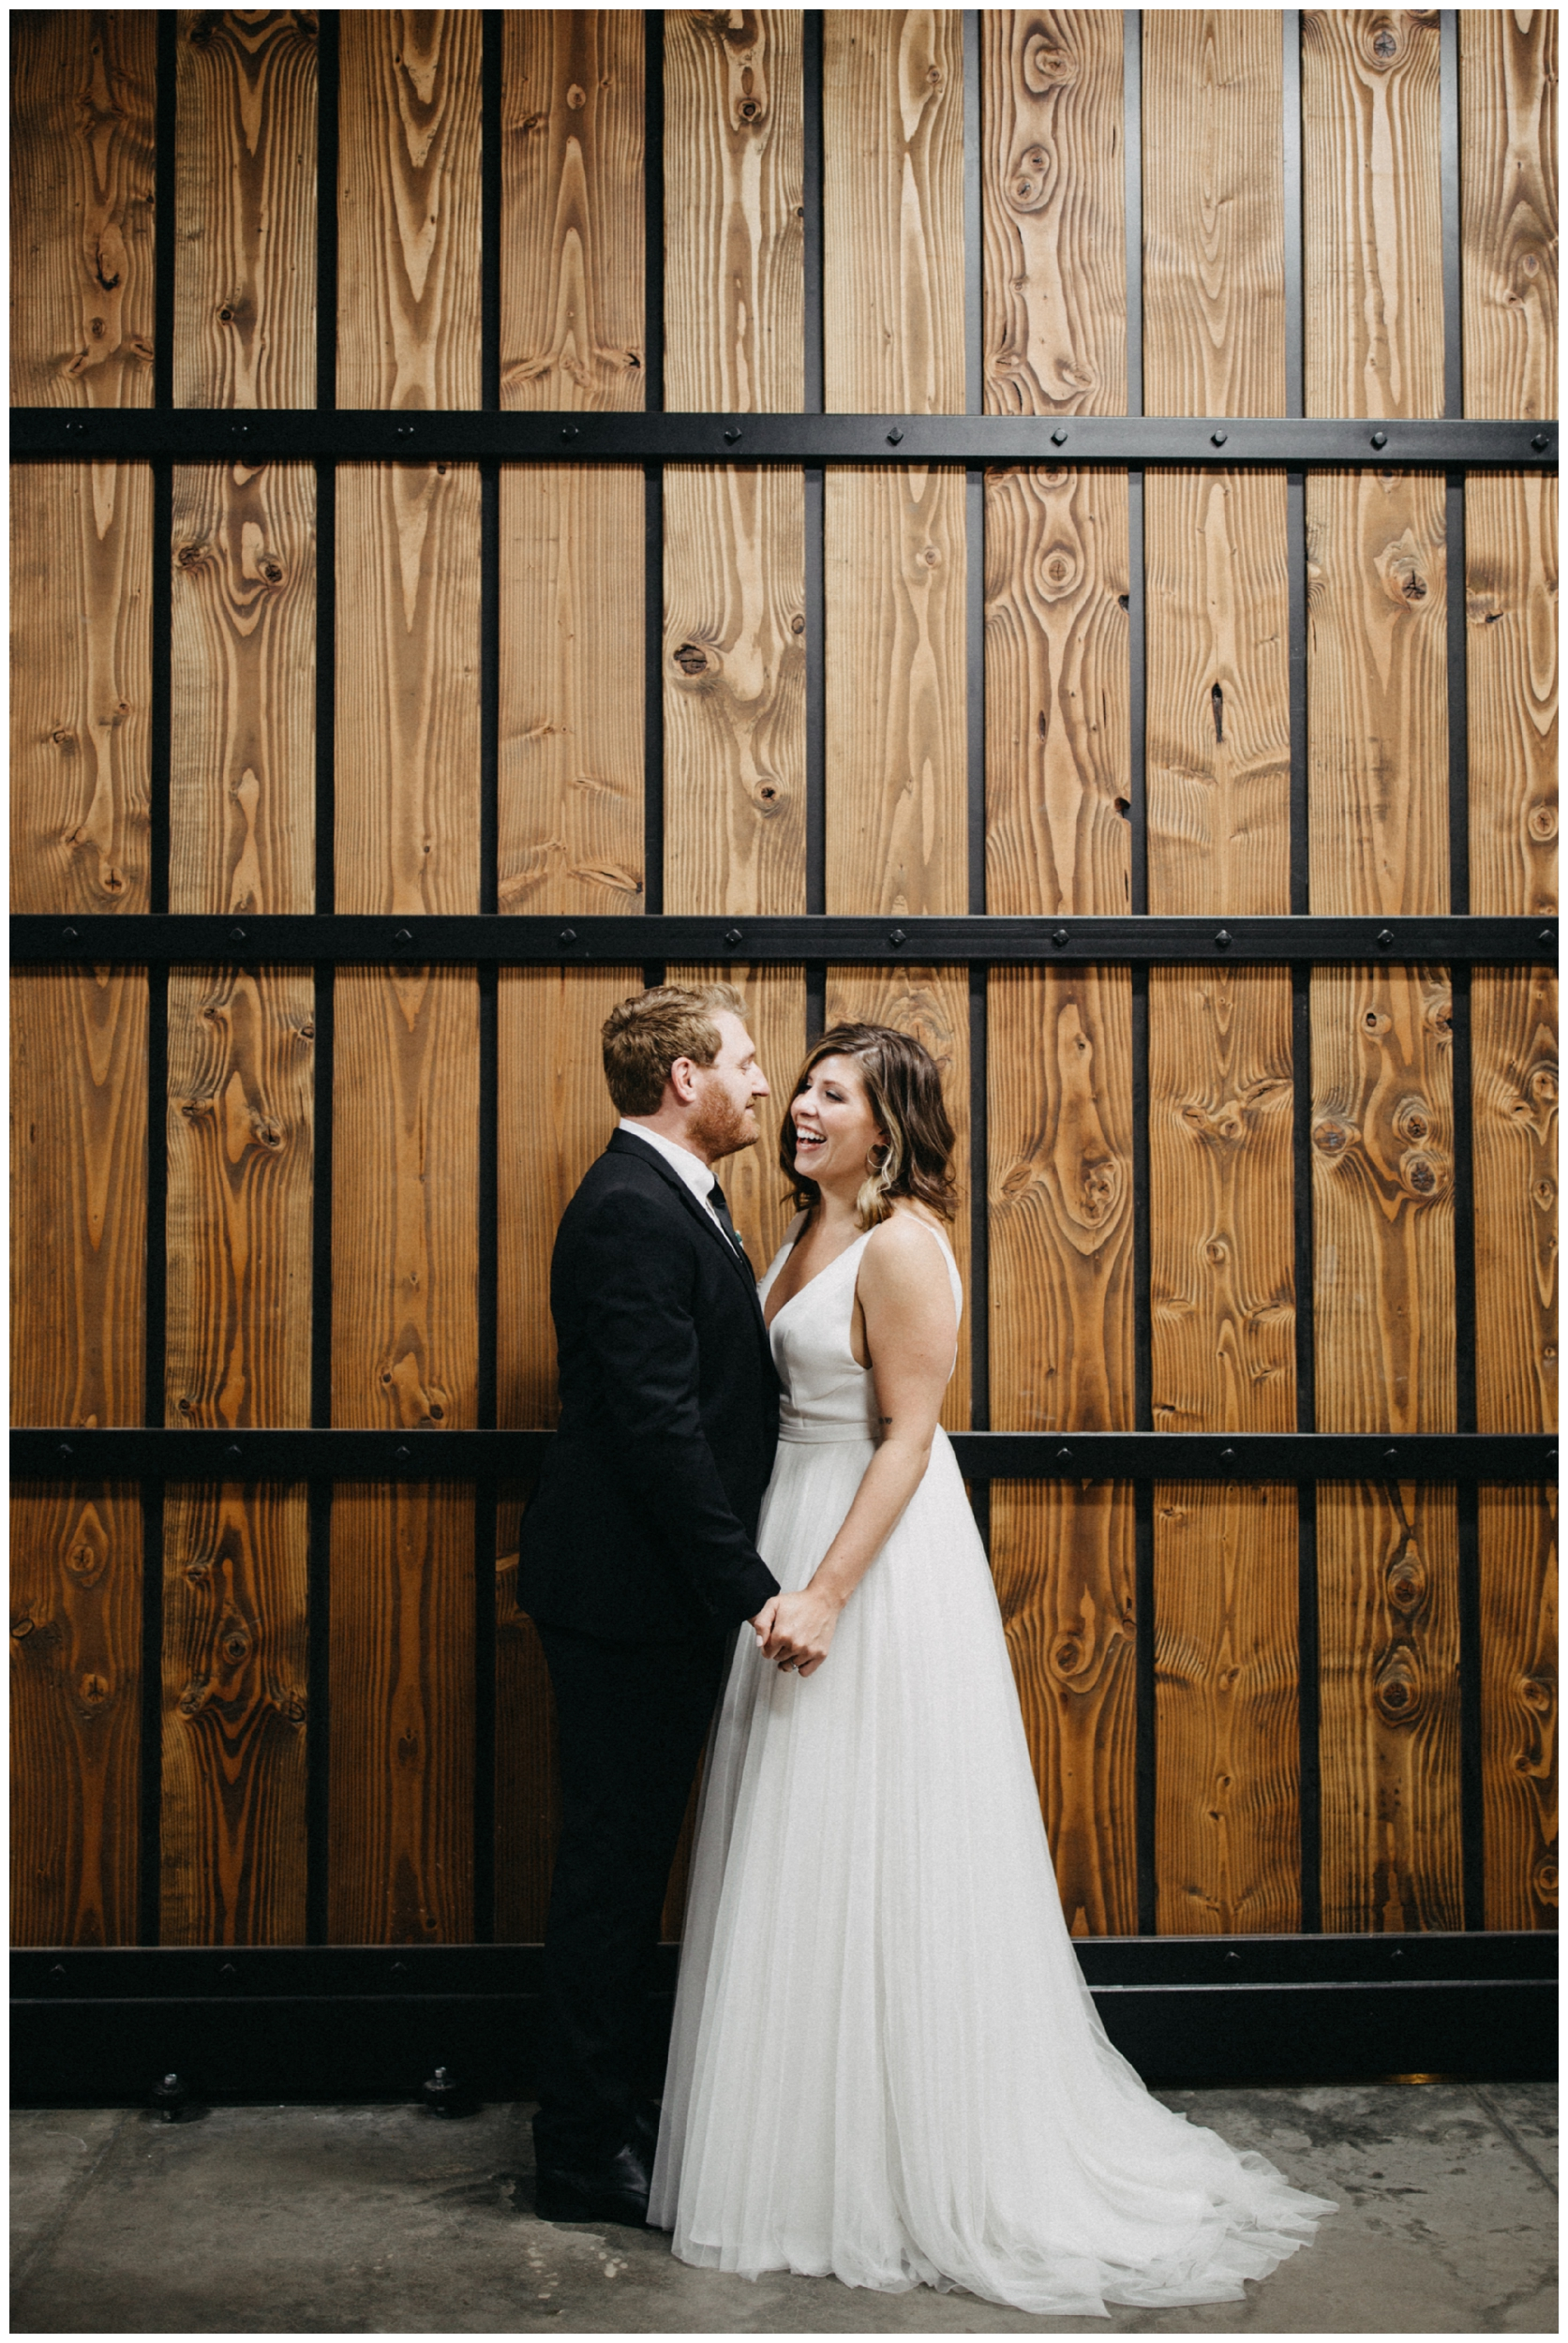 Dellwood vineyard wedding